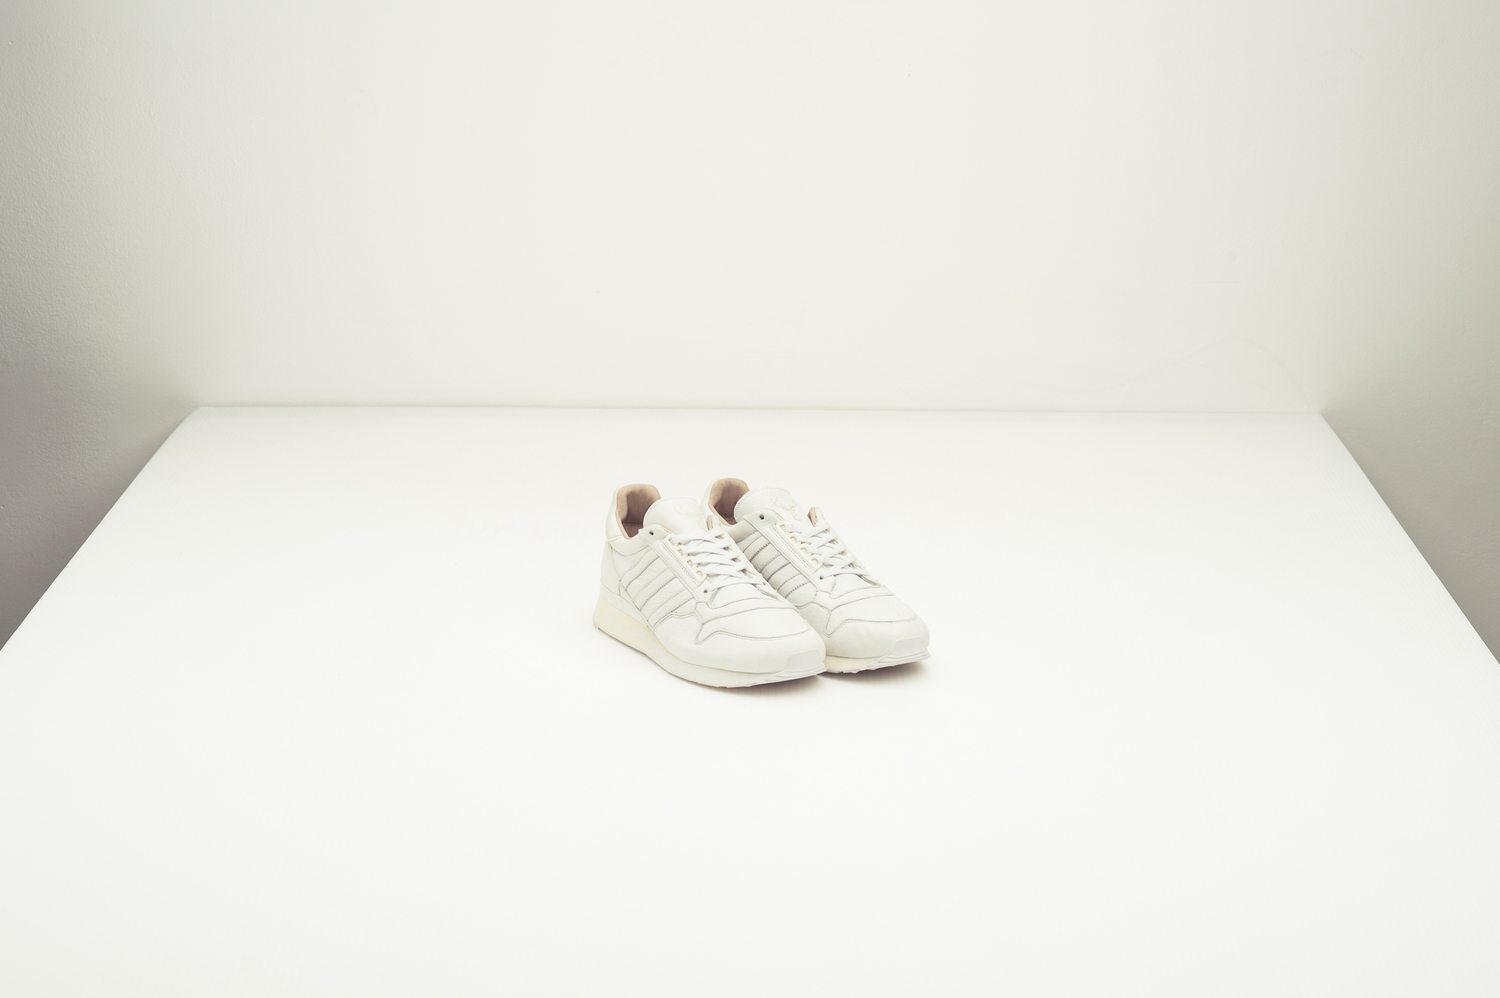 adidas originals made in germany pack 4